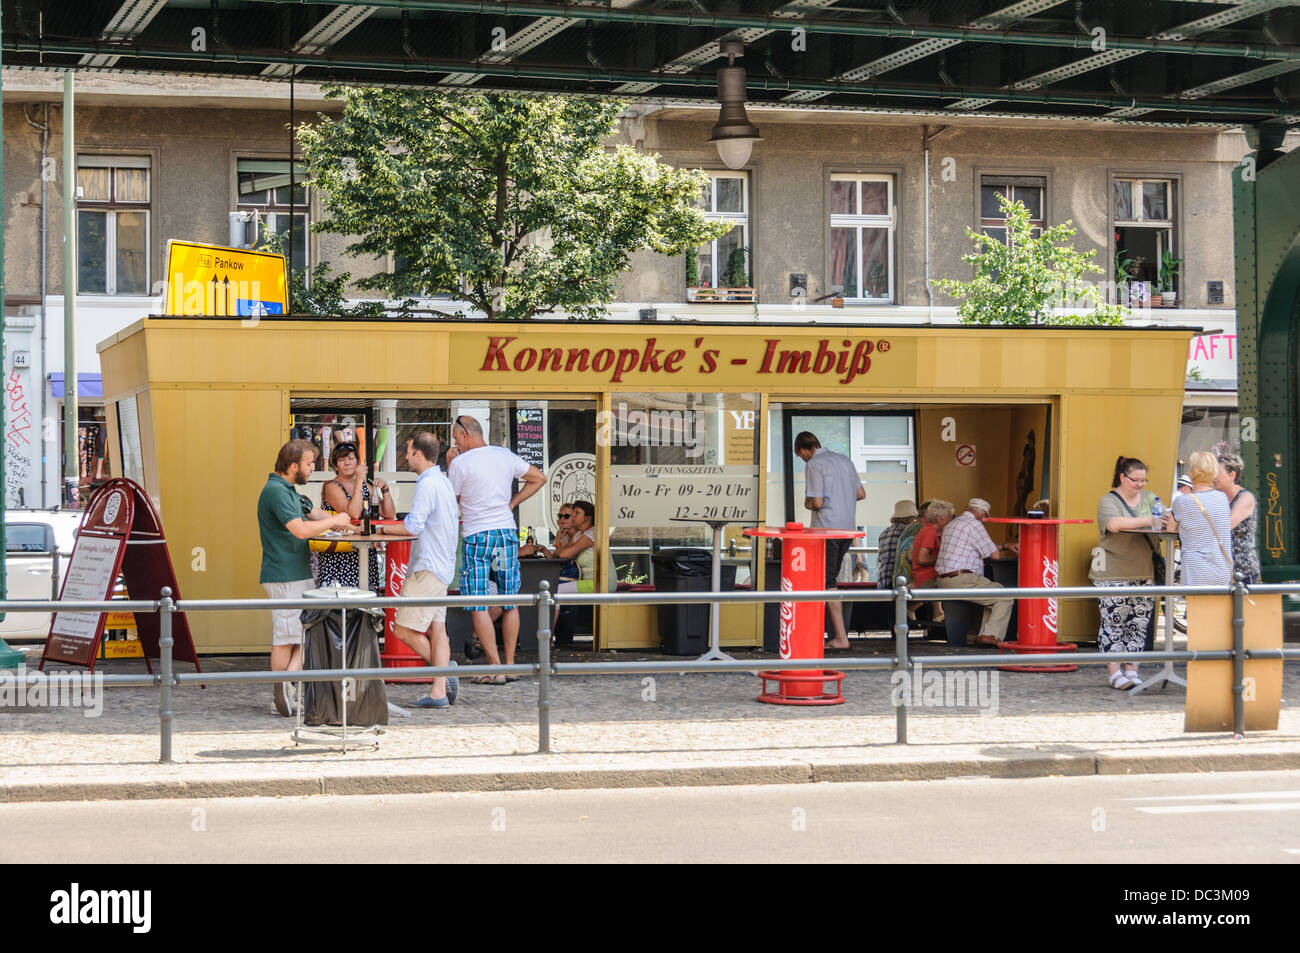 konnopke s imbiss famous snack bar in former east berlin germany stock photo 59088521 alamy. Black Bedroom Furniture Sets. Home Design Ideas